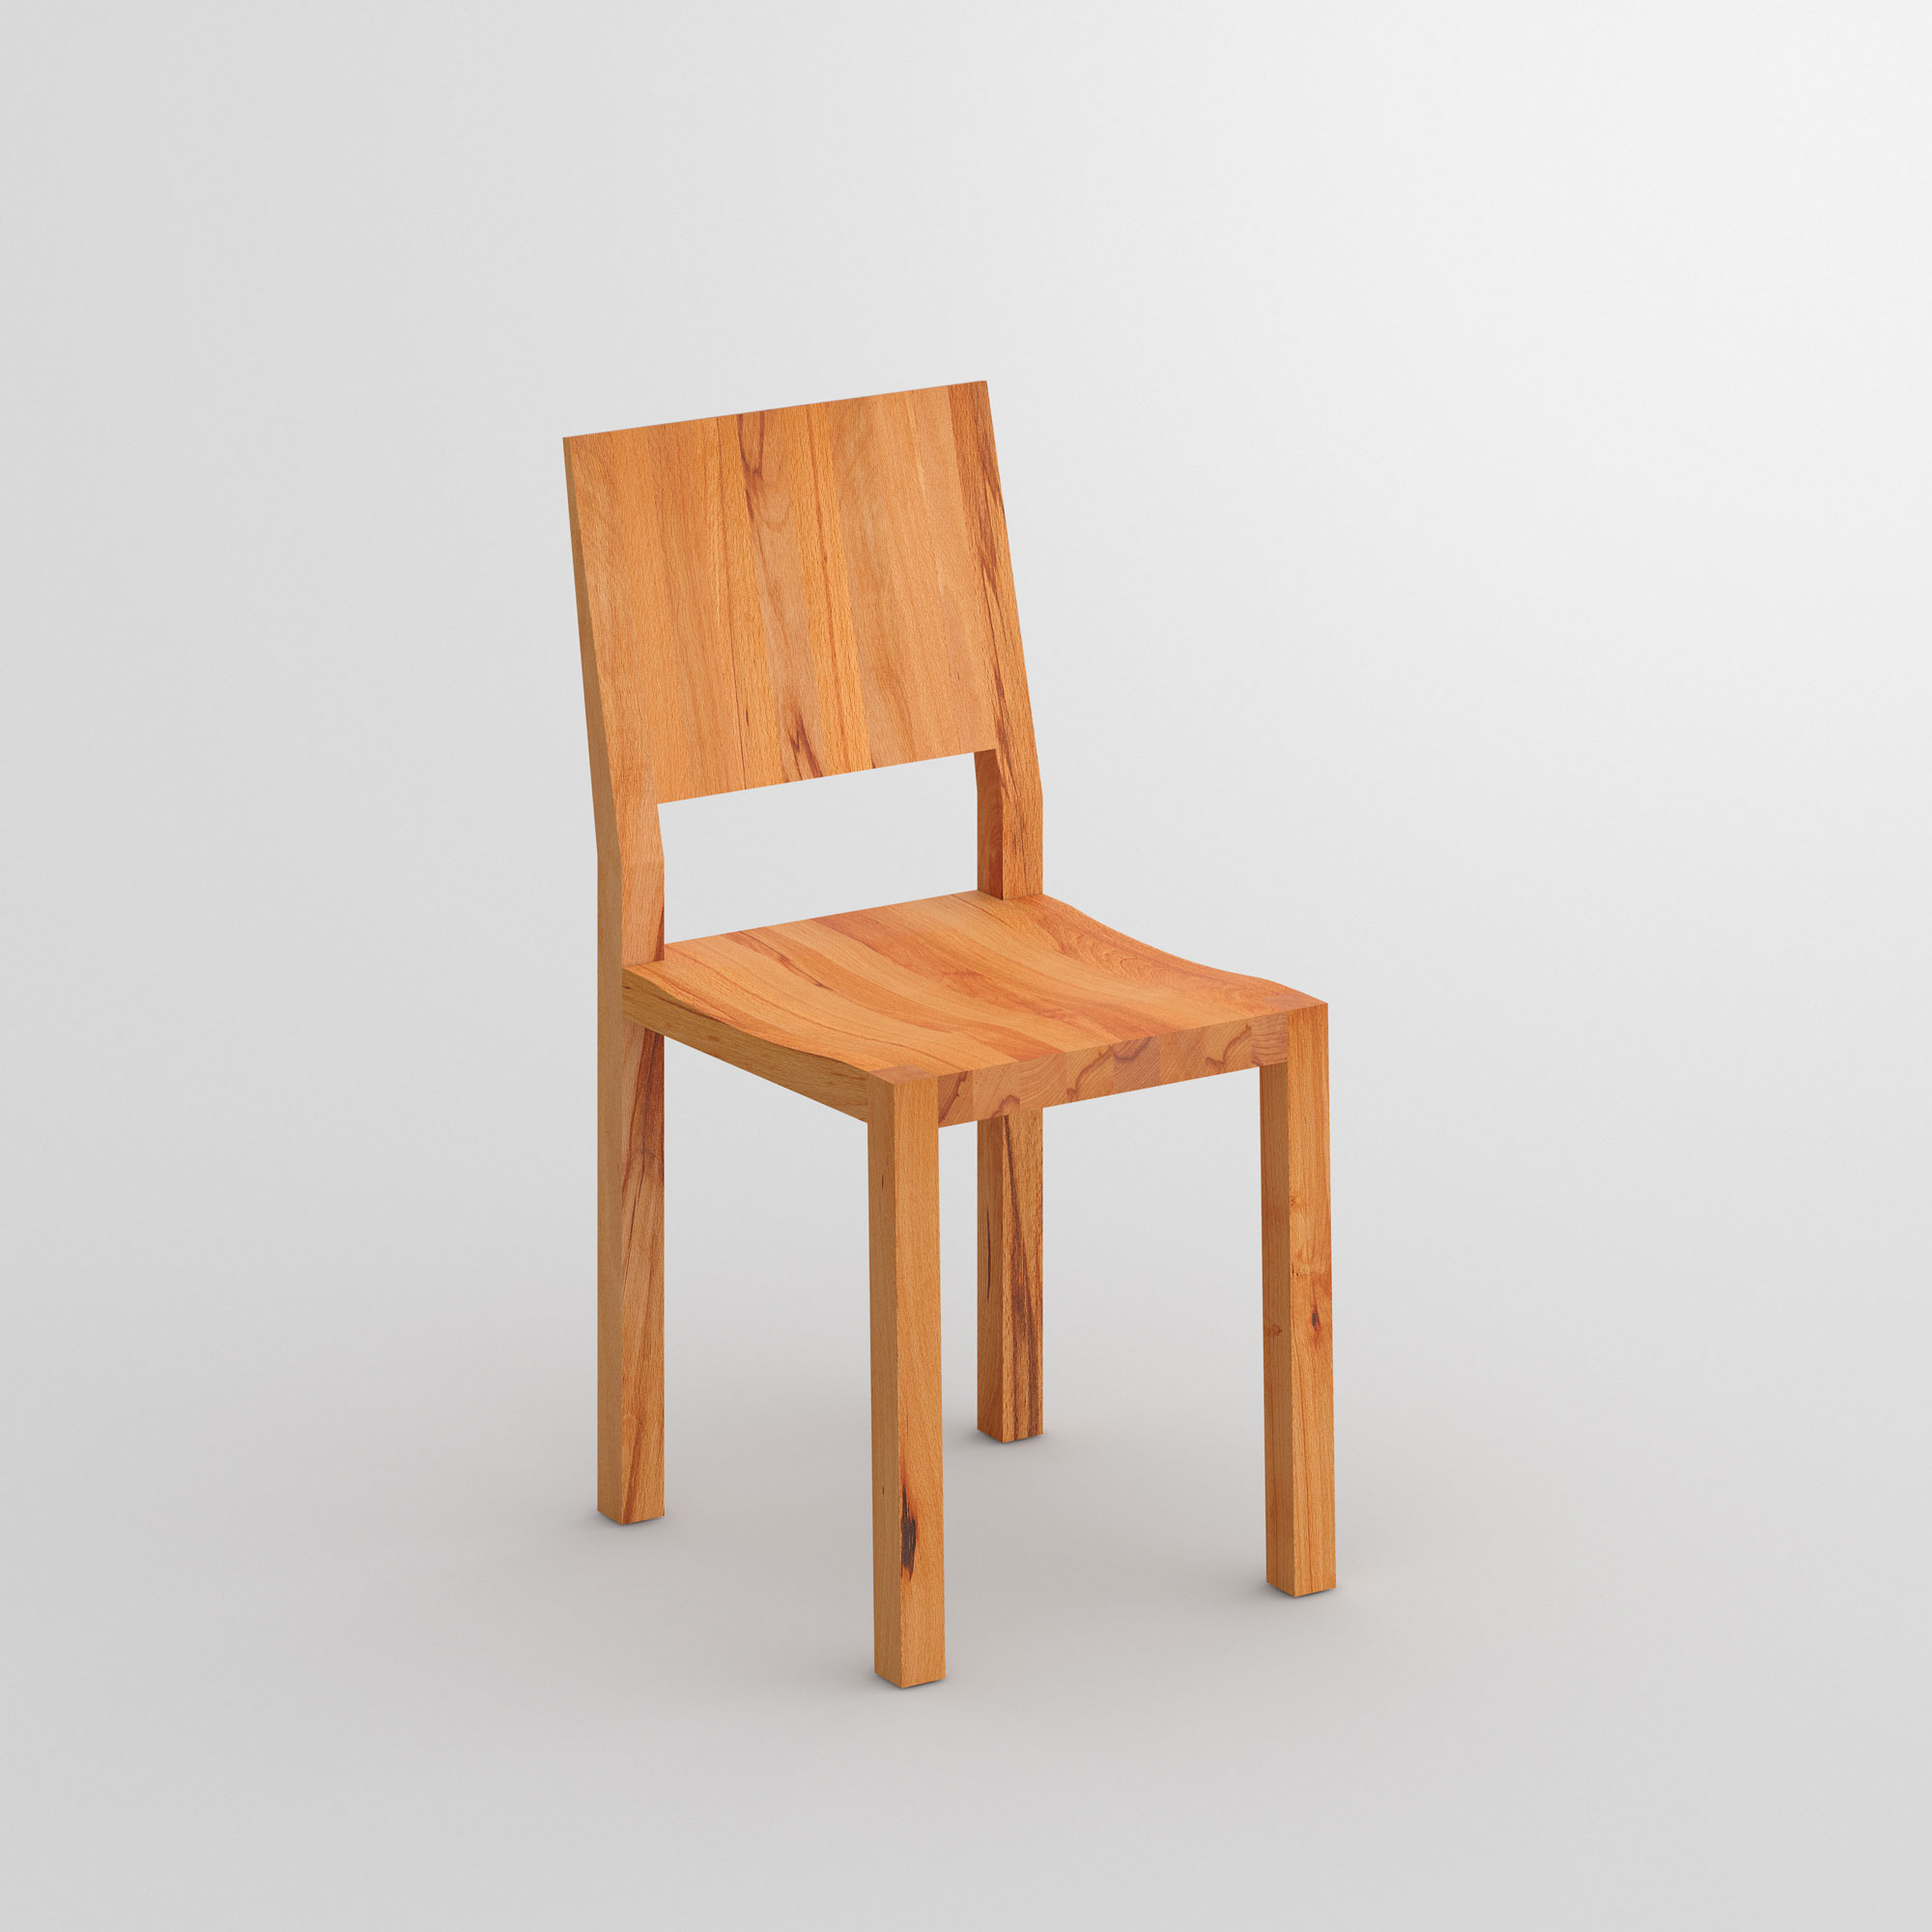 Solid Wood Chair TAU cam1 custom made in solid wood by vitamin design